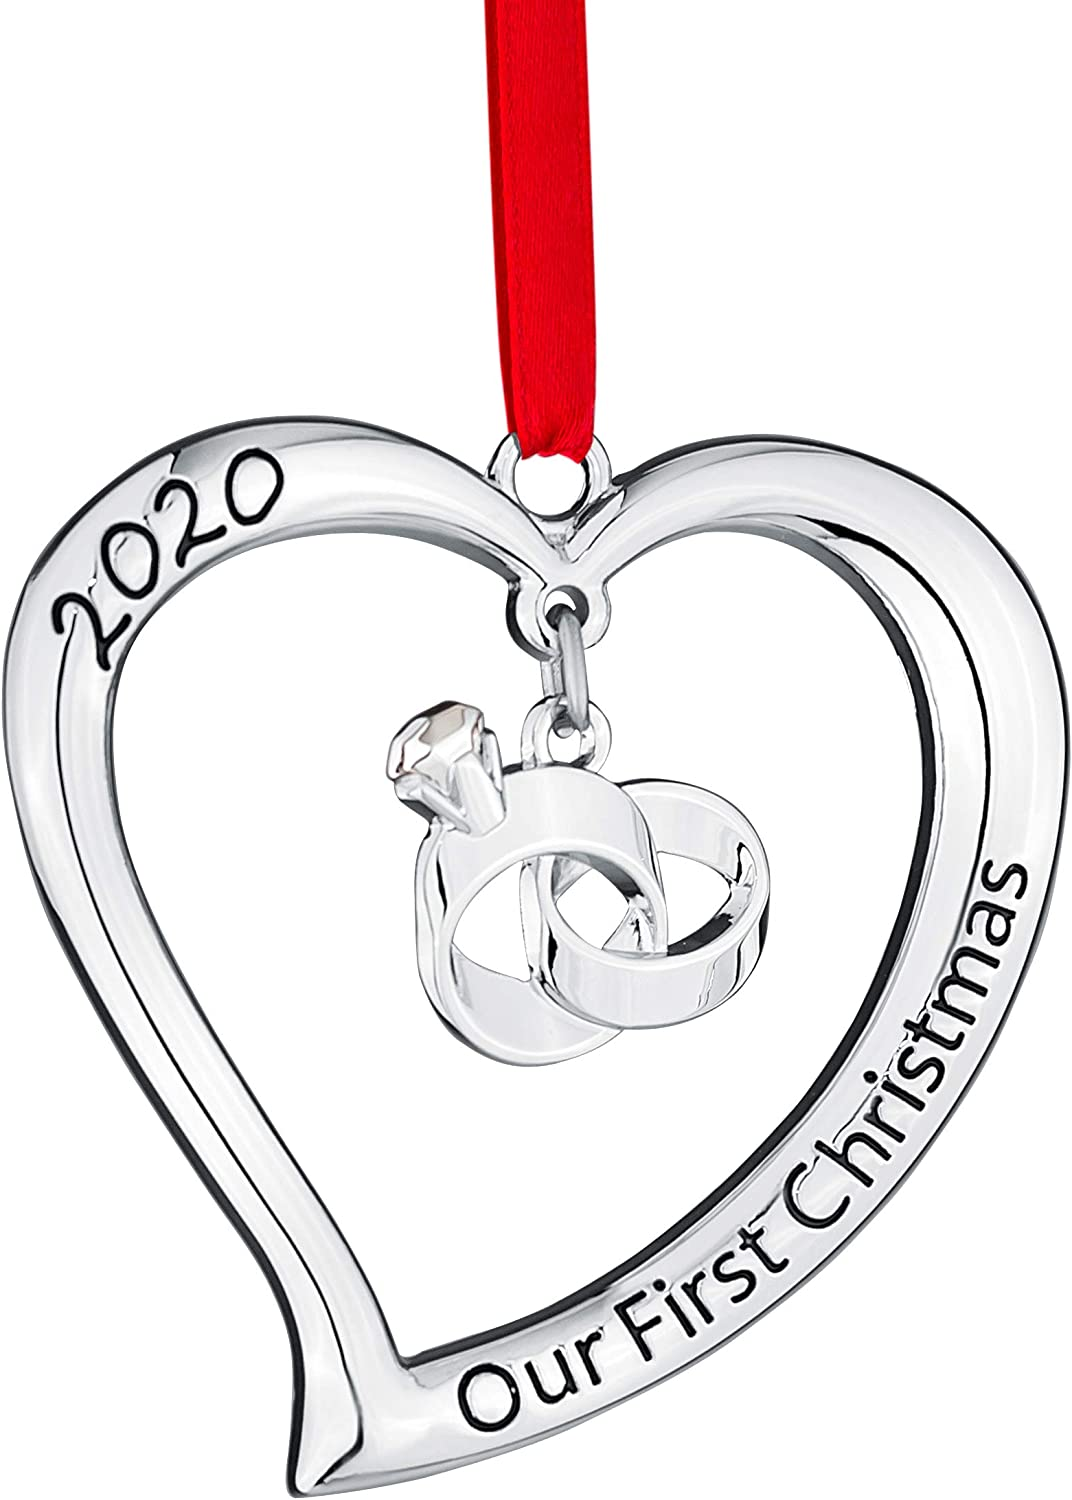 Klikel Our First Christmas Ornament 2020 - First Christmas Married Ornament 2020 - First Christmas Together Ornament - Engaged 2020 Ornament - Engagement Ornament 2020 - Wedding Ornament